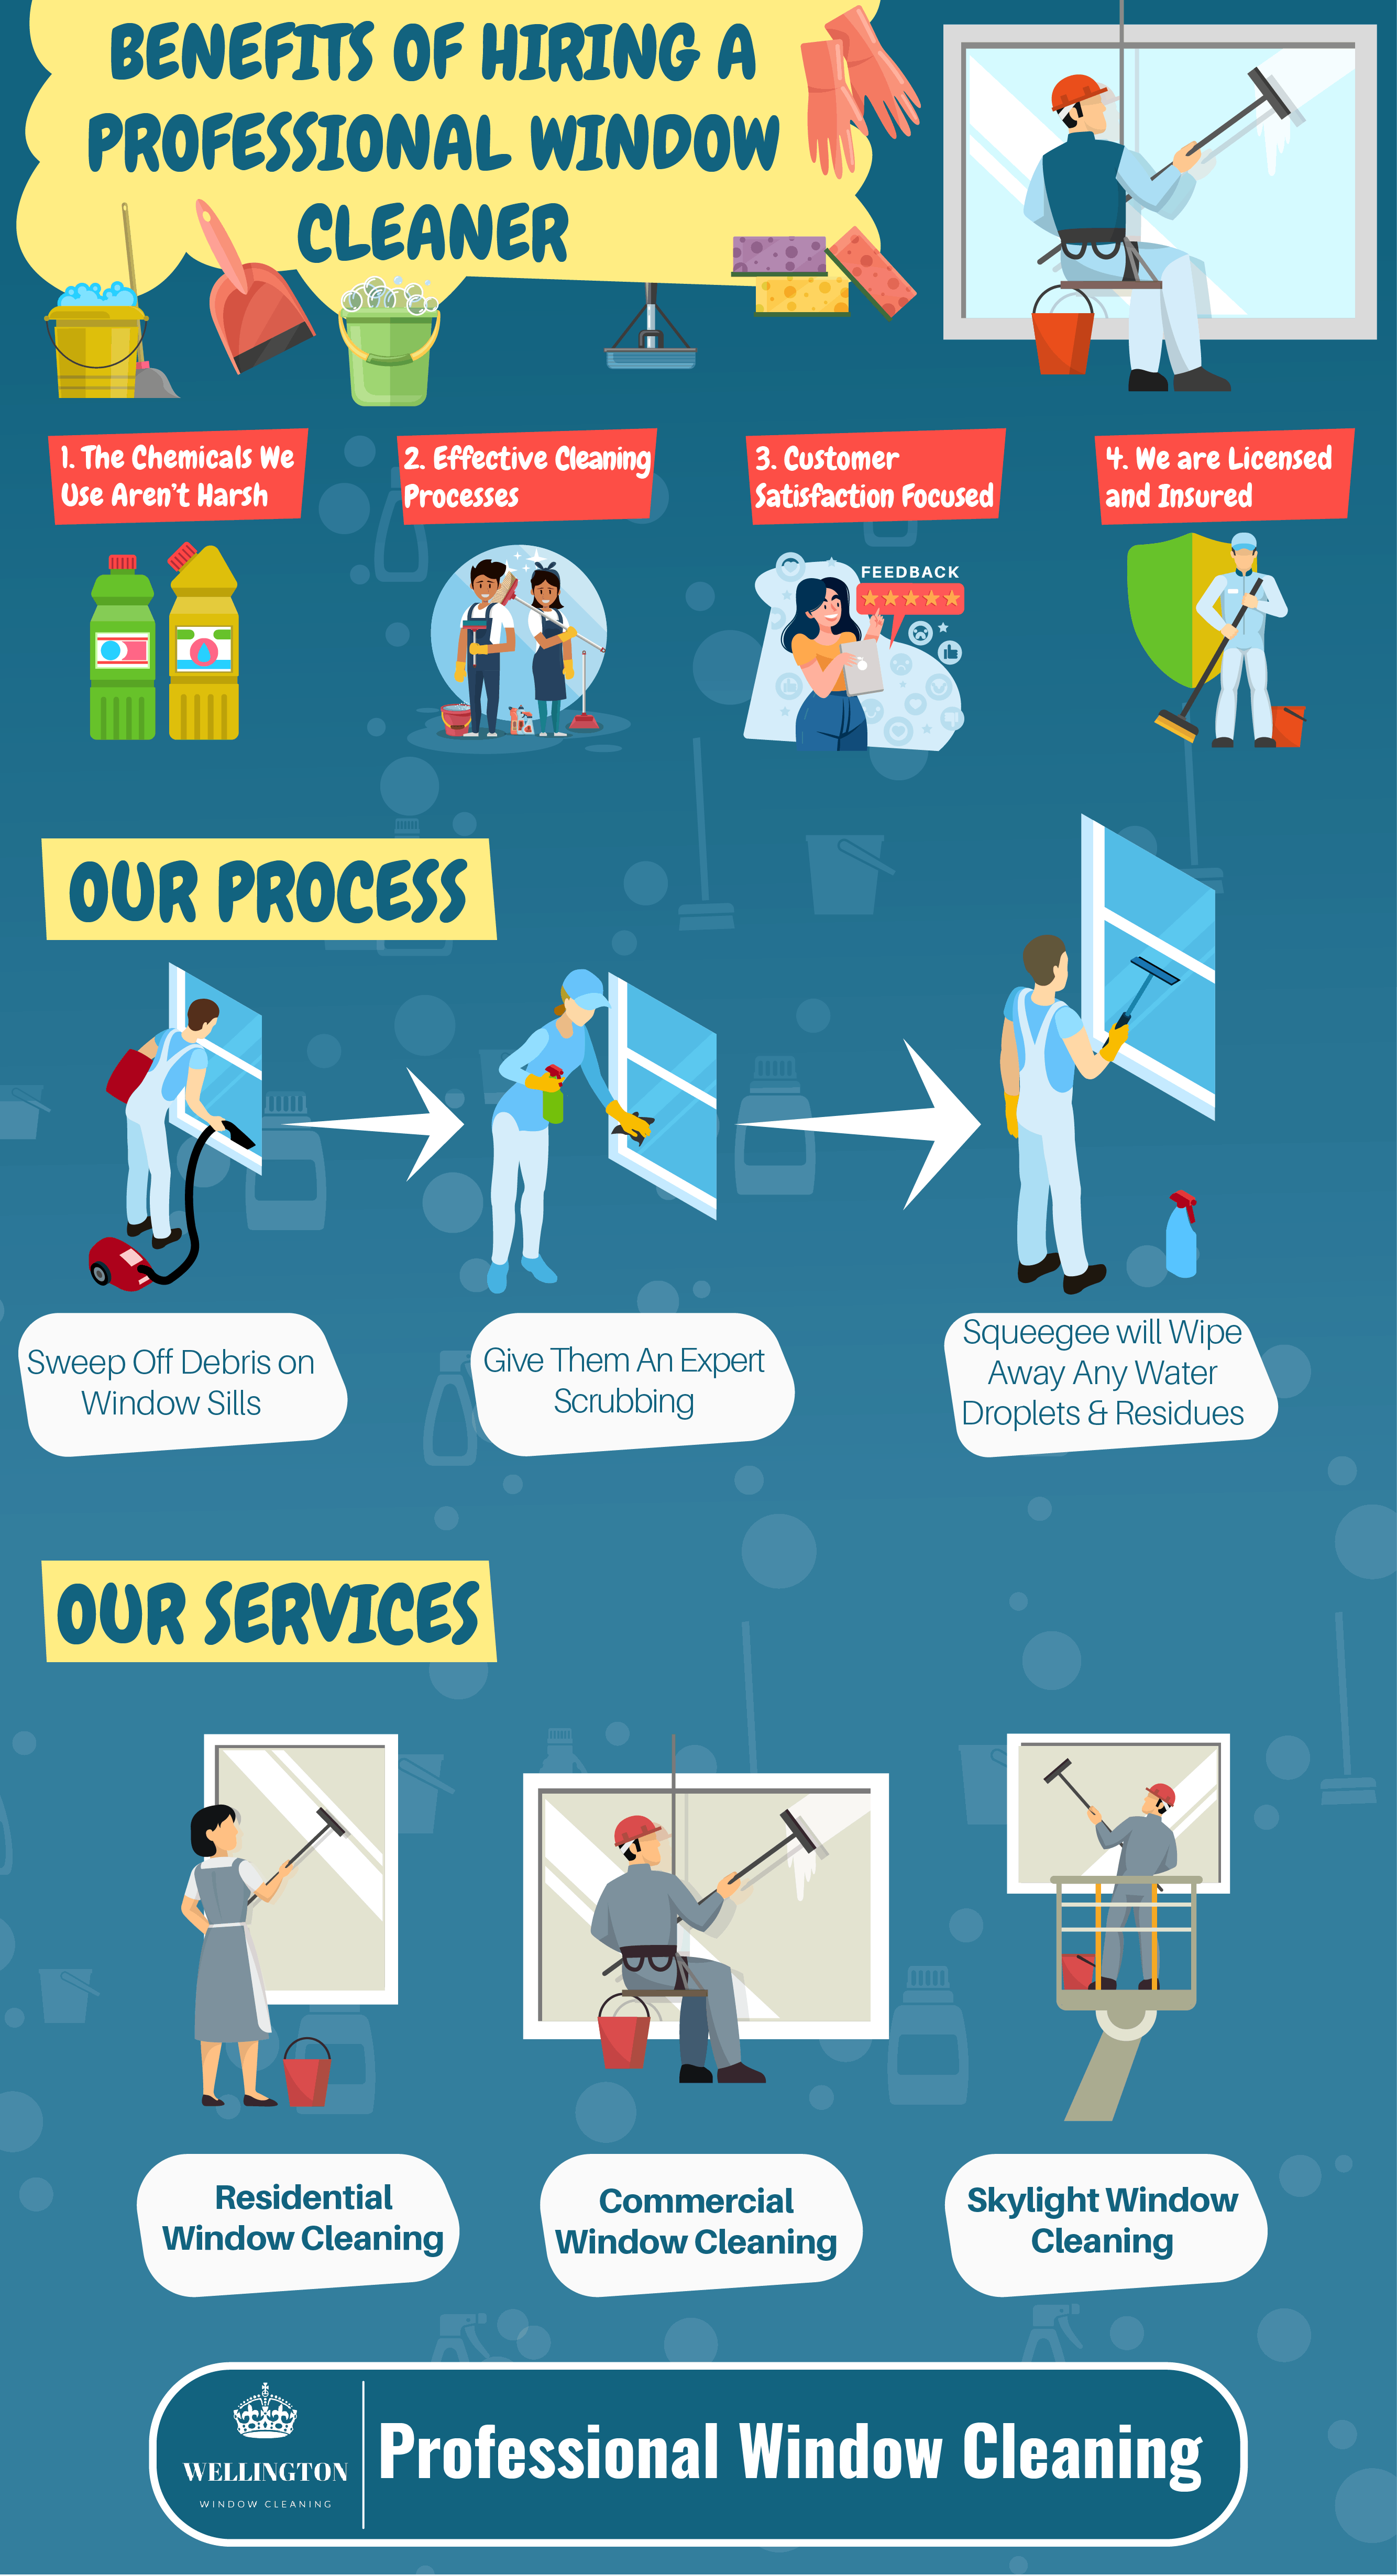 image of infographic showcasing the benefits of hiring a professional window washer